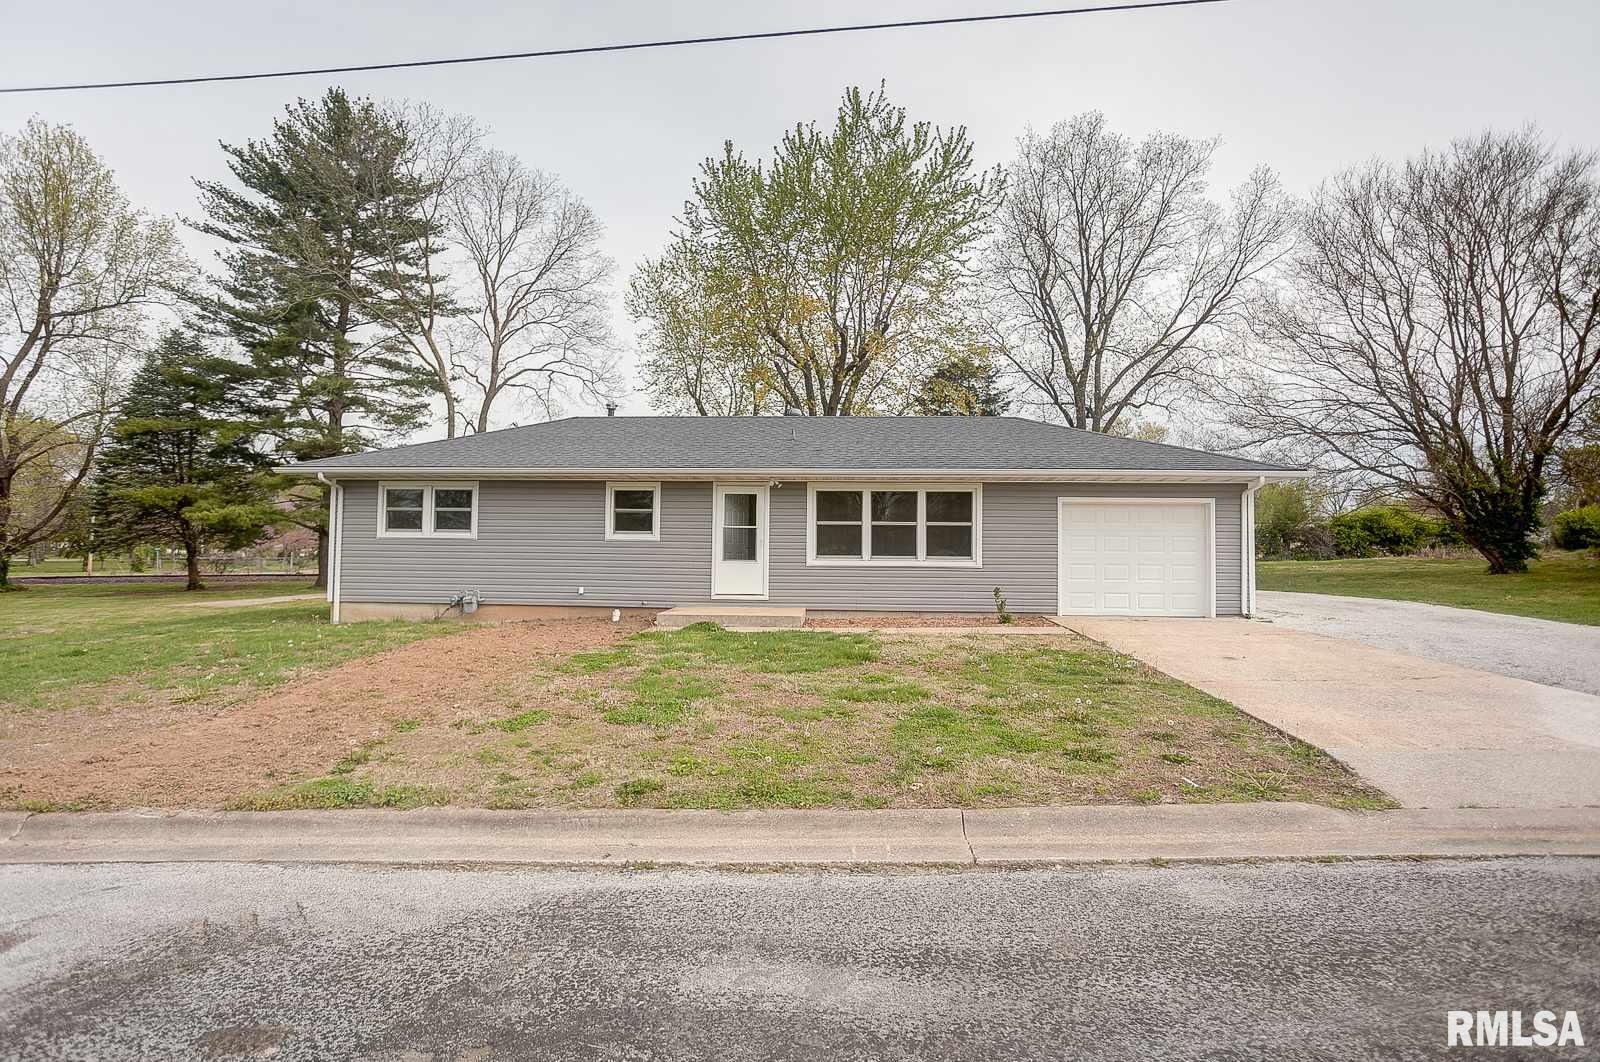 903 Booster Property Photo - Evansville, IL real estate listing